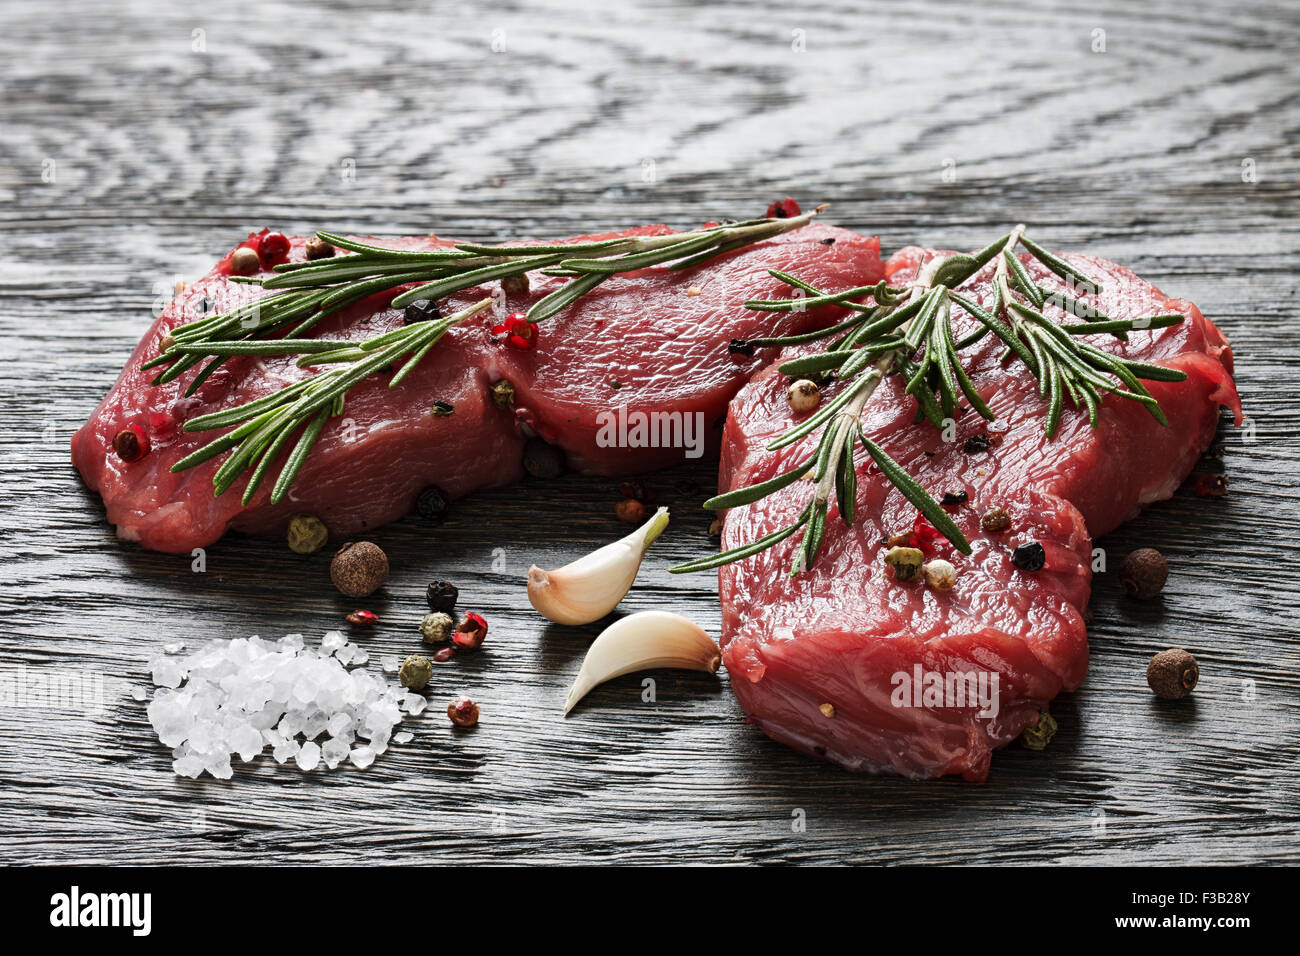 A couple of juicy raw beef steaks garnished with rosemary twigs, garlic and peppercorns - Stock Image